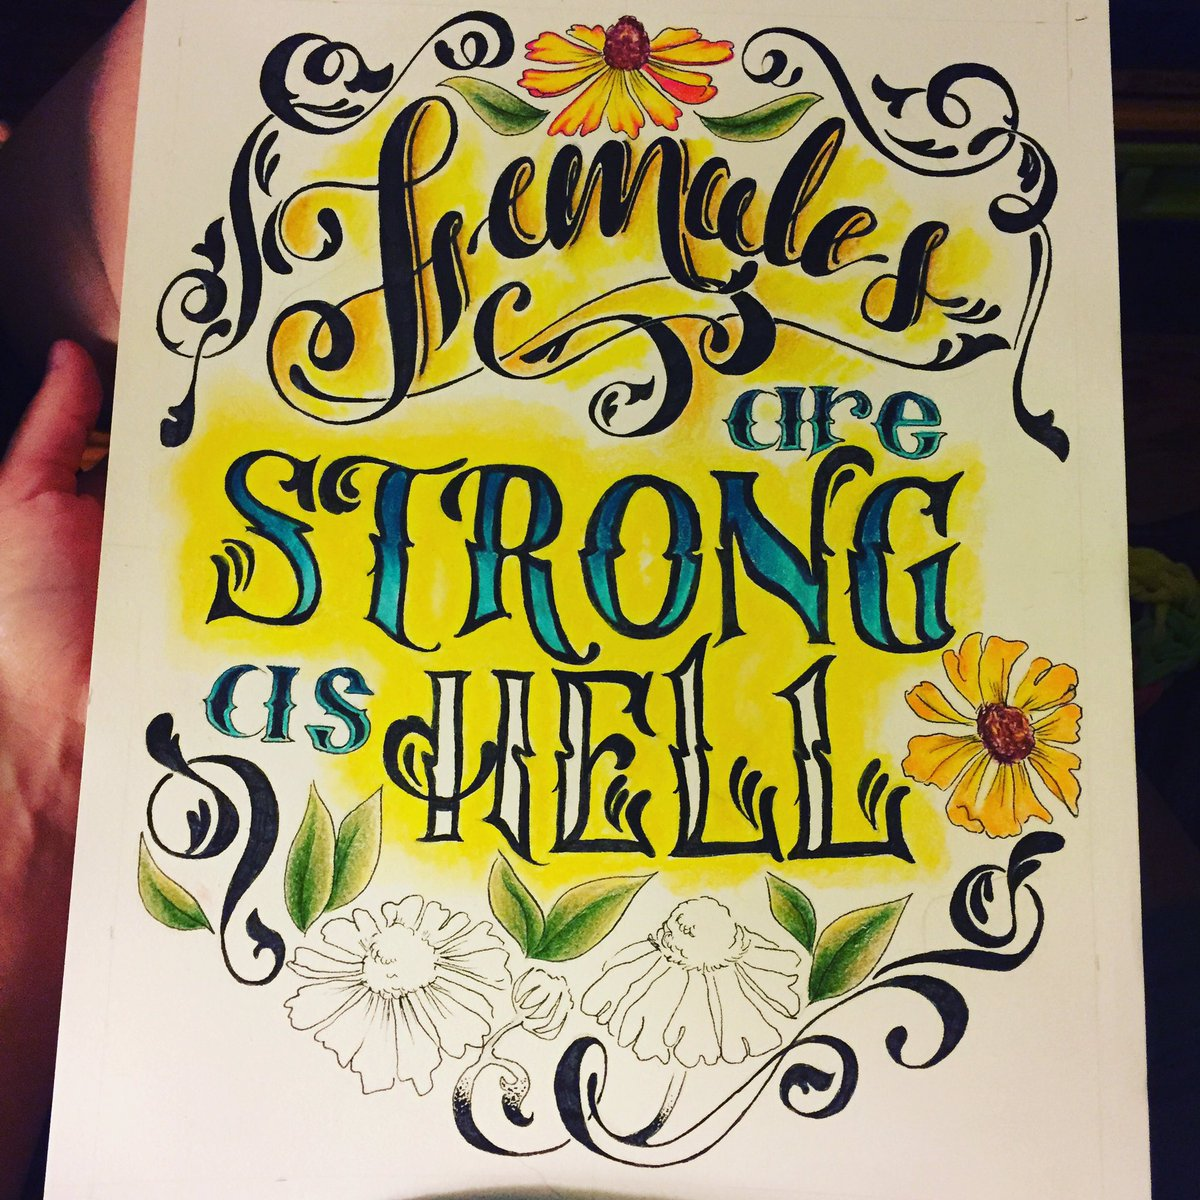 Strong ladies may be frowned upon by some but that doesn&#39;t mean it&#39;s wrong #itellmyself  #unbreakablekimmyschmidt #bestrong #ladypower<br>http://pic.twitter.com/GdcvcNTsyT